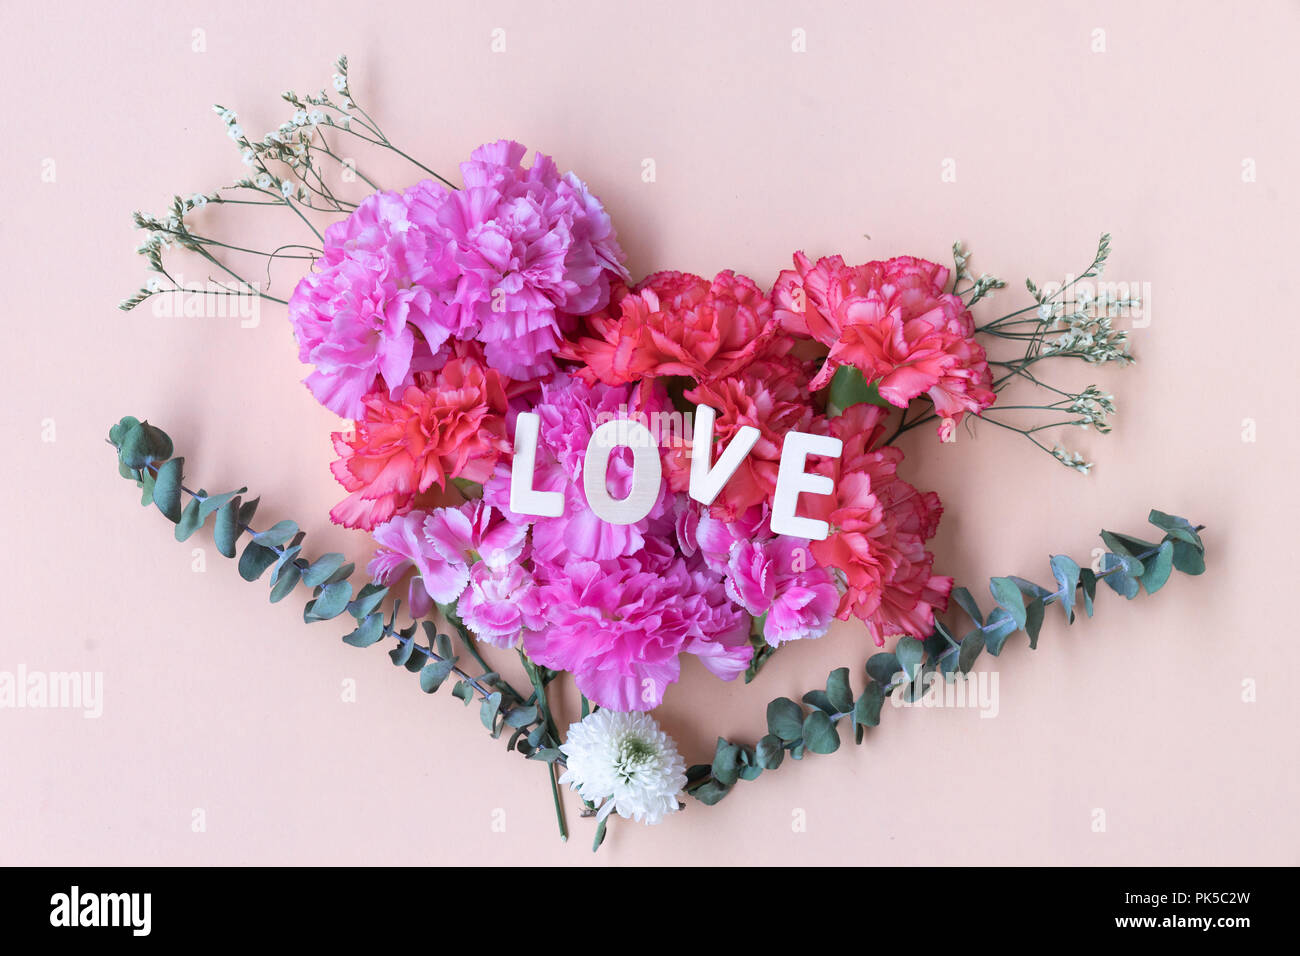 Love Wooden Word On Fresh Carnation Flowers Bouquet Stock Photo